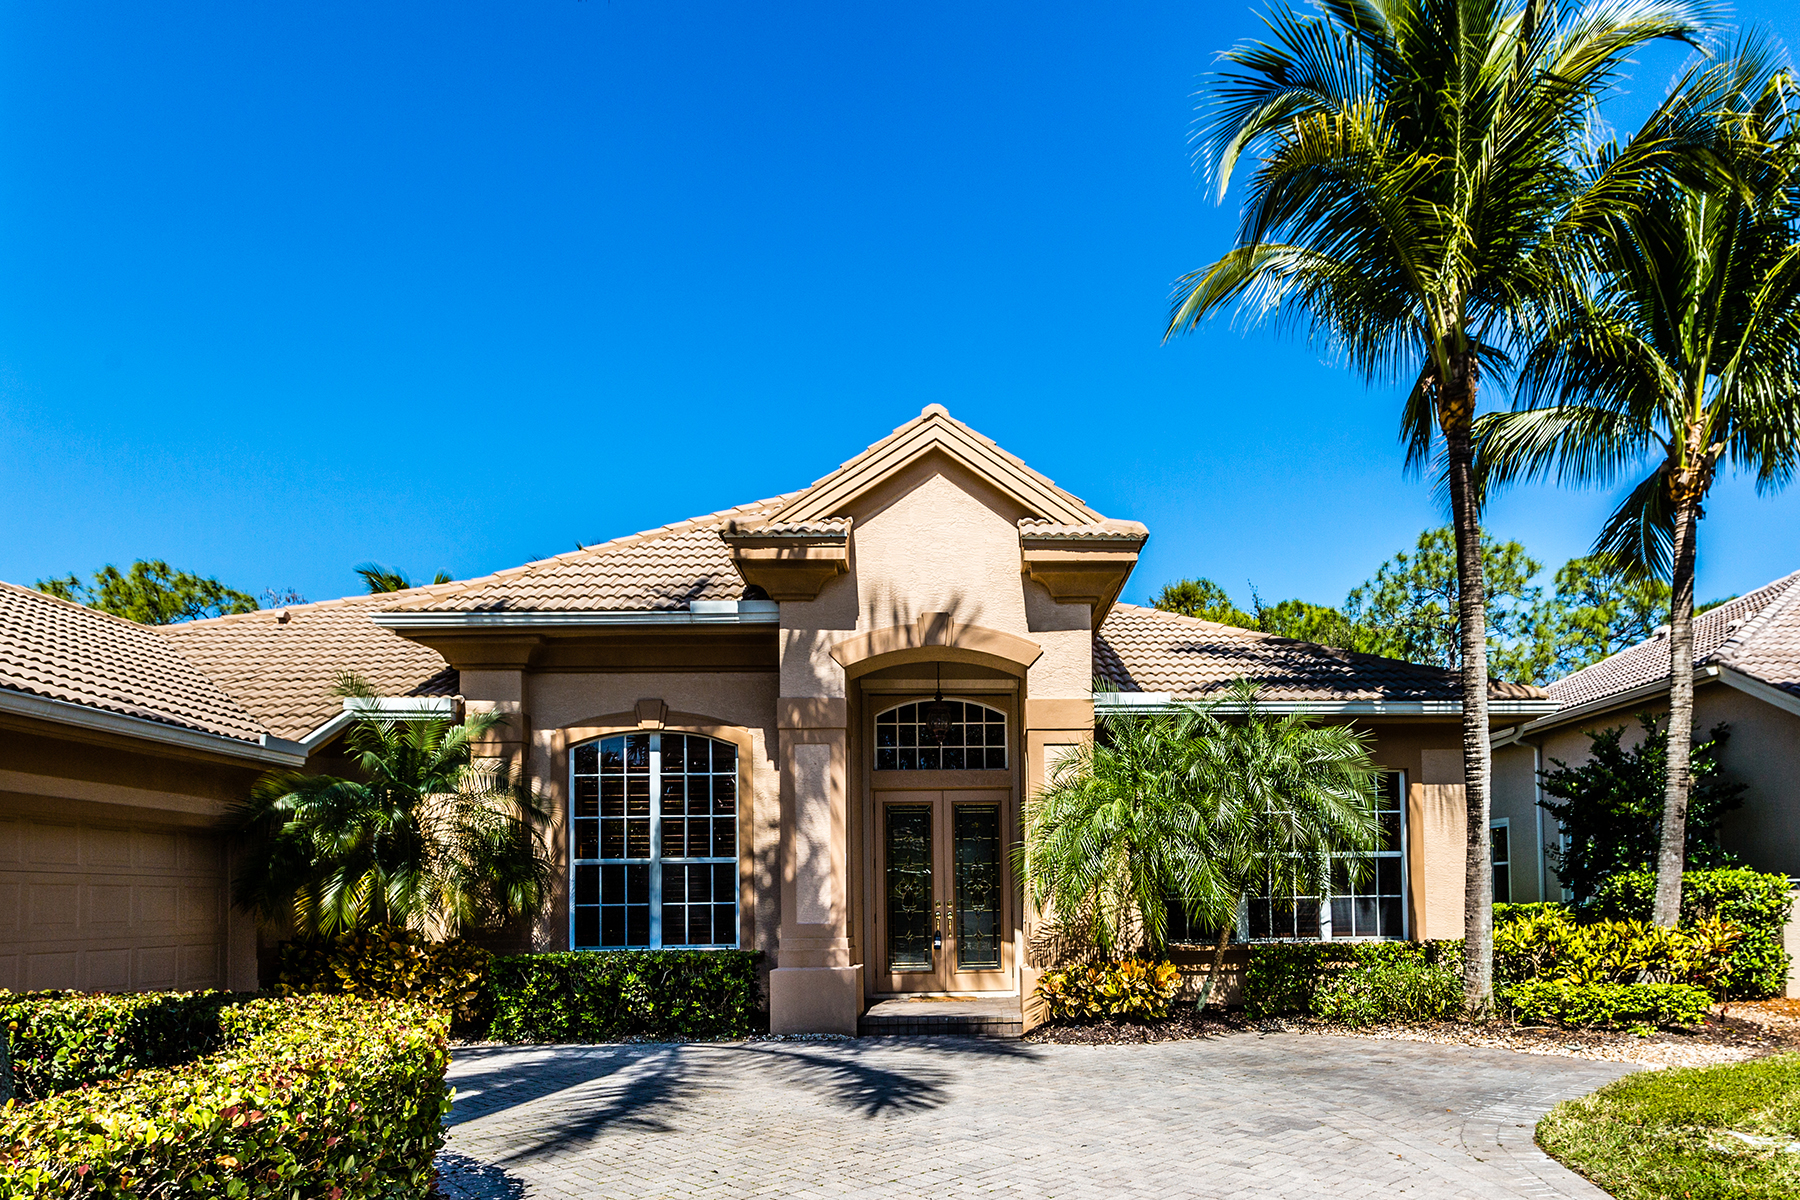 Villa per Vendita alle ore FIDDLER'S CREEK - MULBERRY ROW 7690 Mulberry Ln Naples, Florida, 34114 Stati Uniti